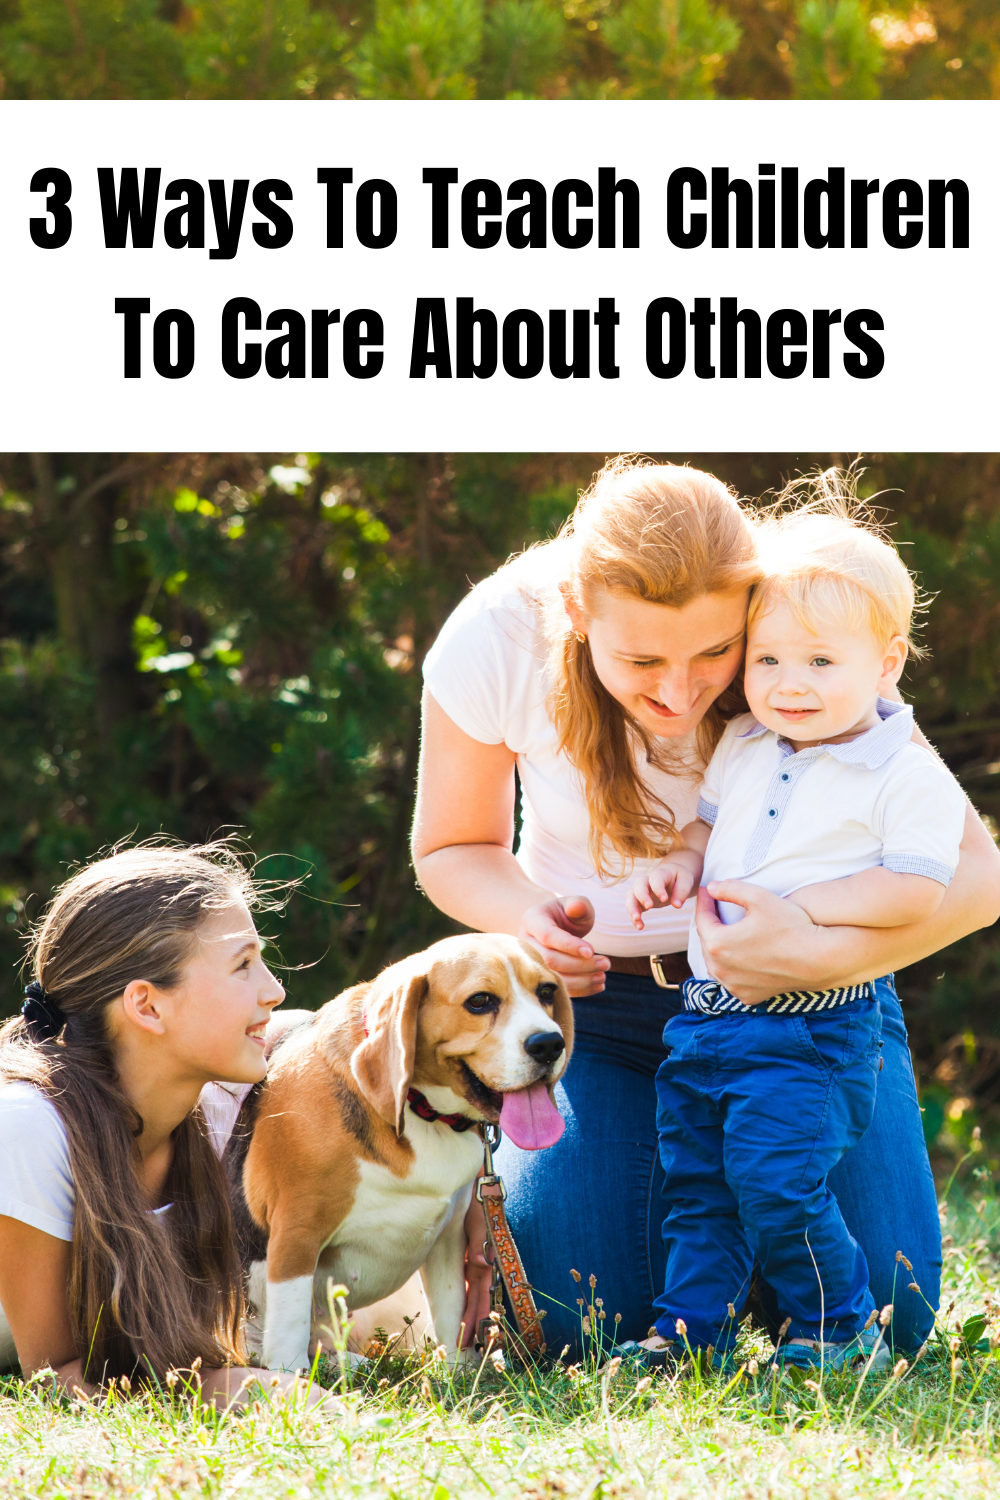 3 Ways to Teach Children To Care About others